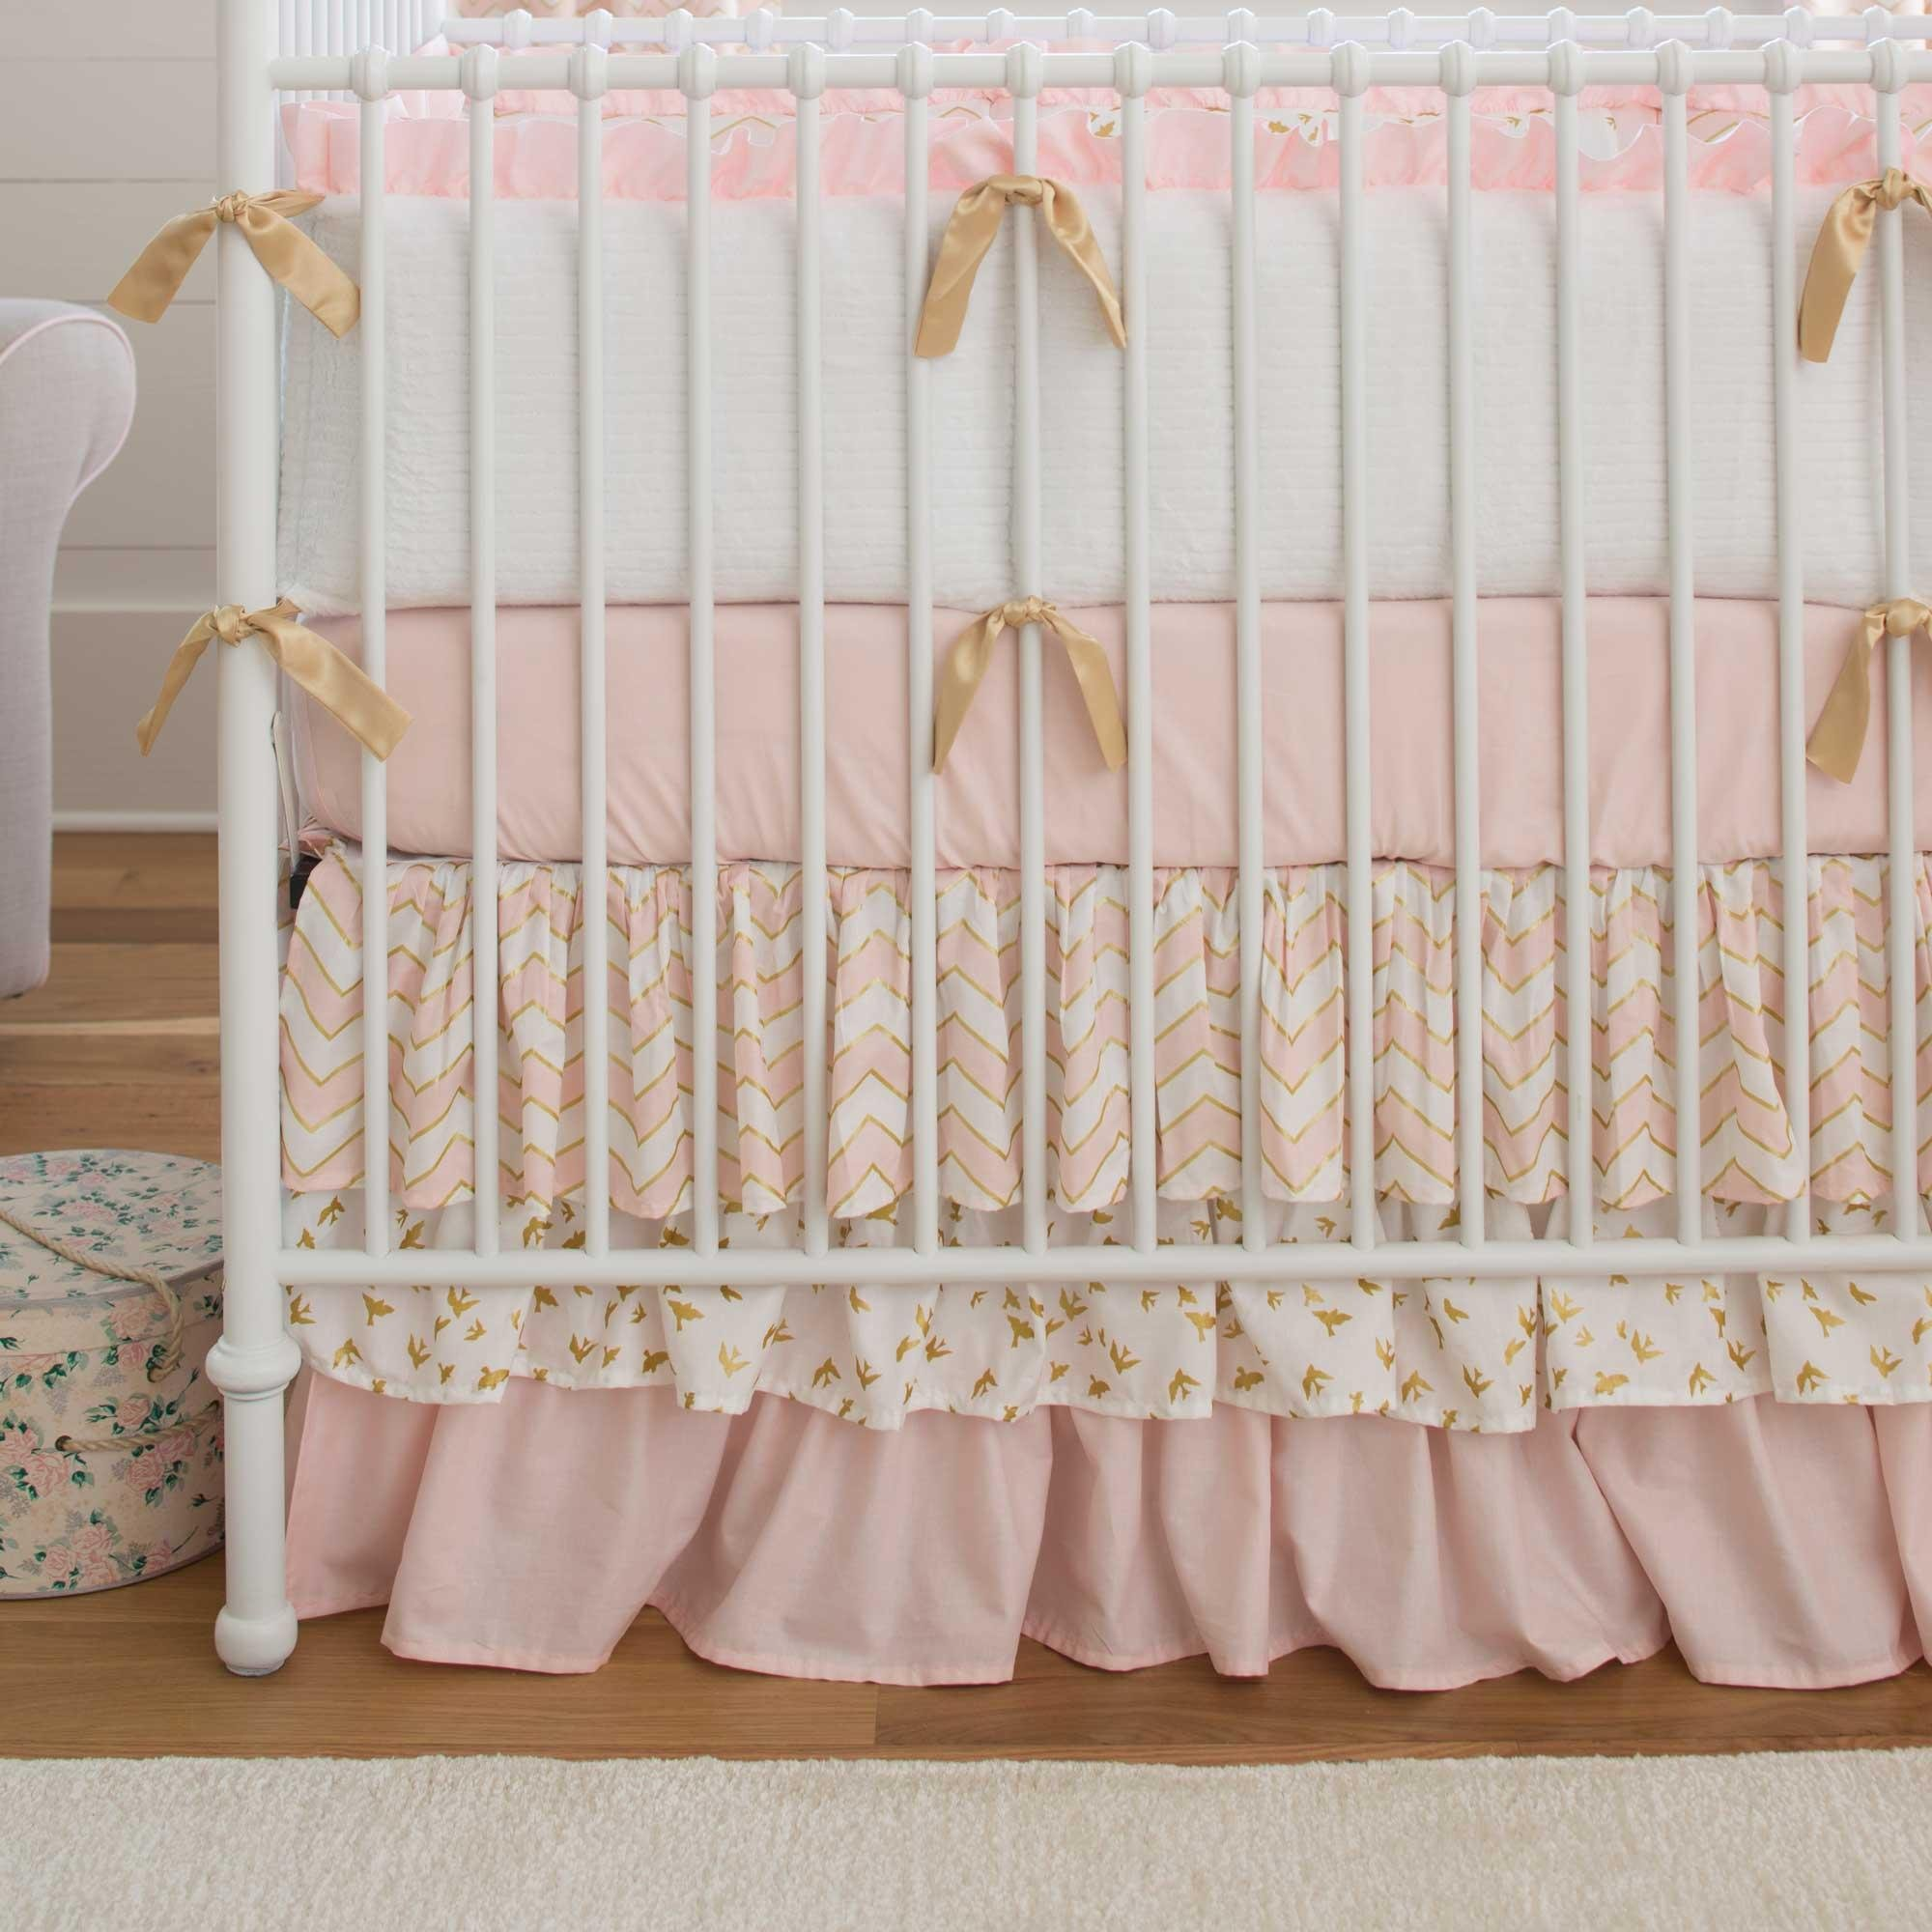 Carousel Designs Pale Pink and Gold Chevron Crib Skirt Three Tier 18-Inch Length by Carousel Designs